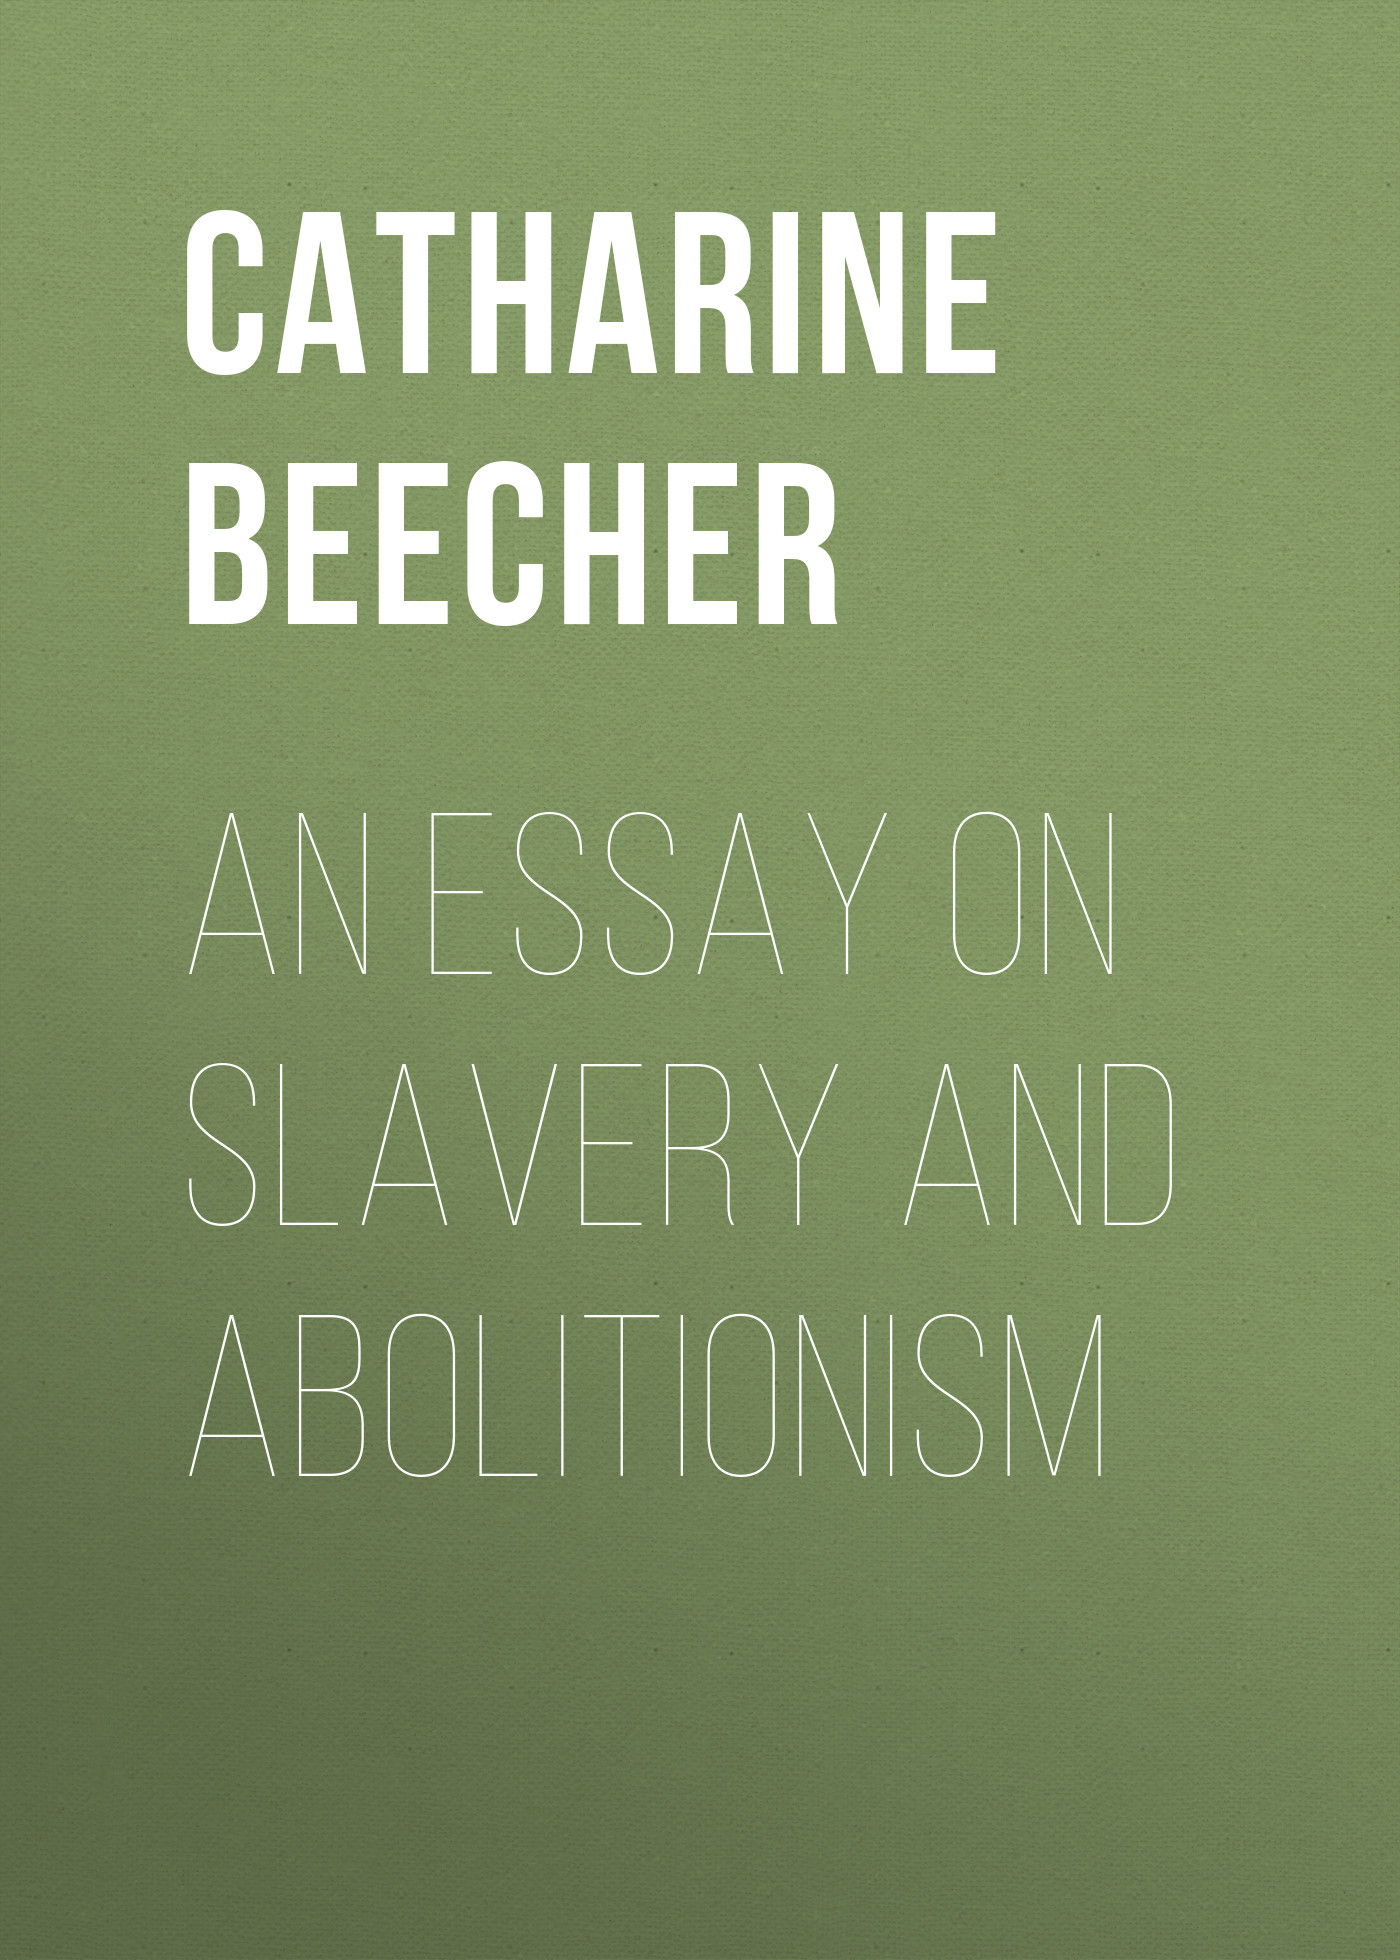 Beecher Catharine Esther An Essay on Slavery and Abolitionism augustus frederic christopher kollmann an essay on musical harmony